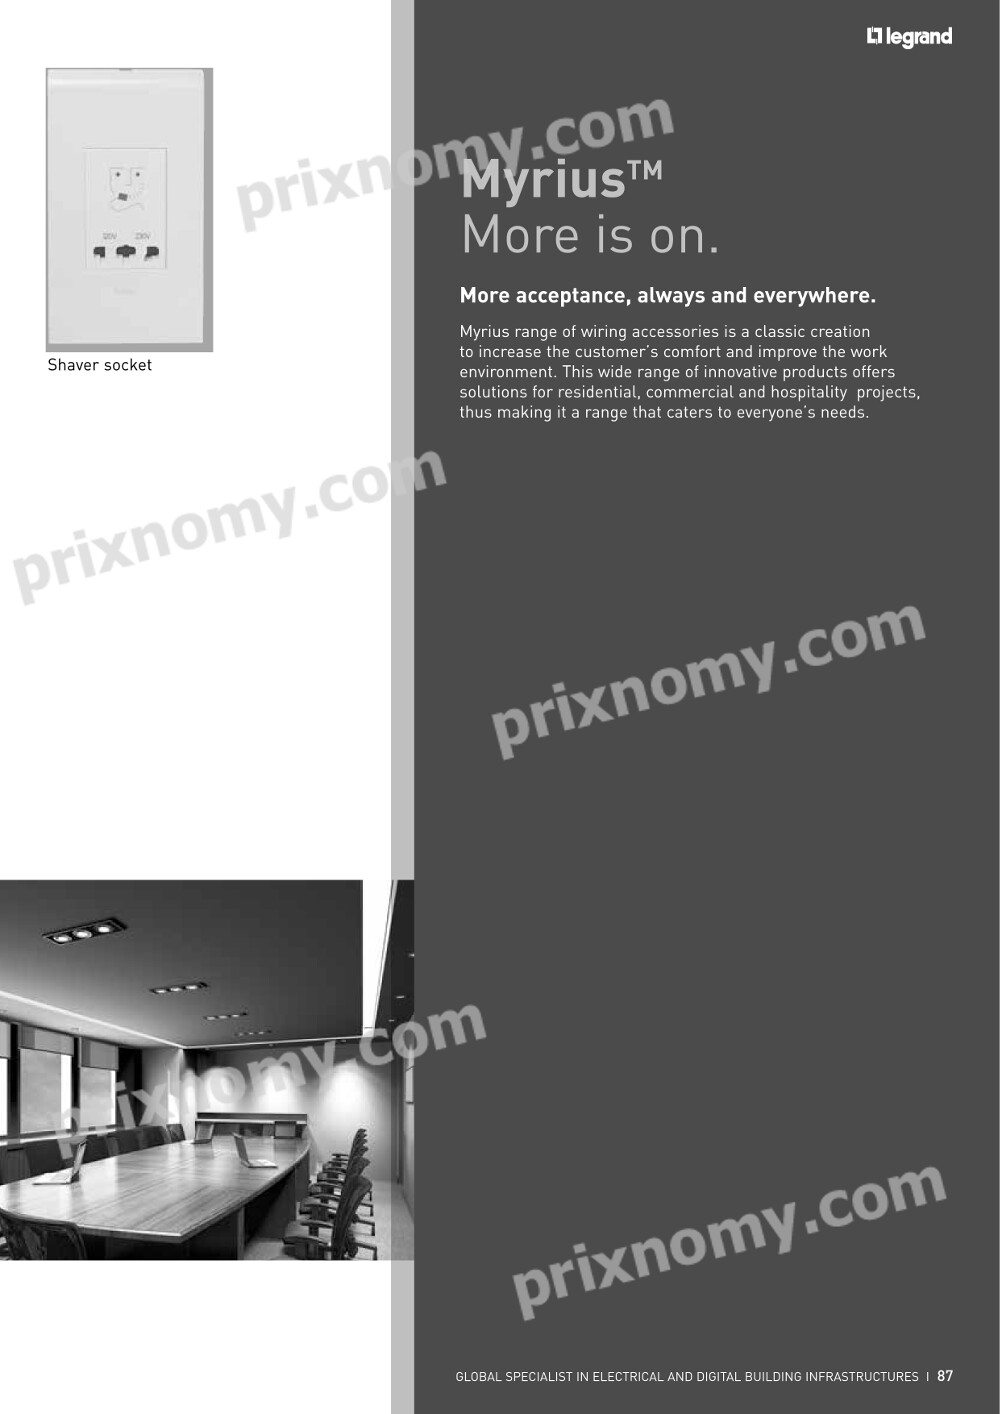 Prixnomy Legrand Electrical Price List 2016 87 Wiring Accessories Flush Mounting Boxes Supplier Black Plates With Frame Best Prices